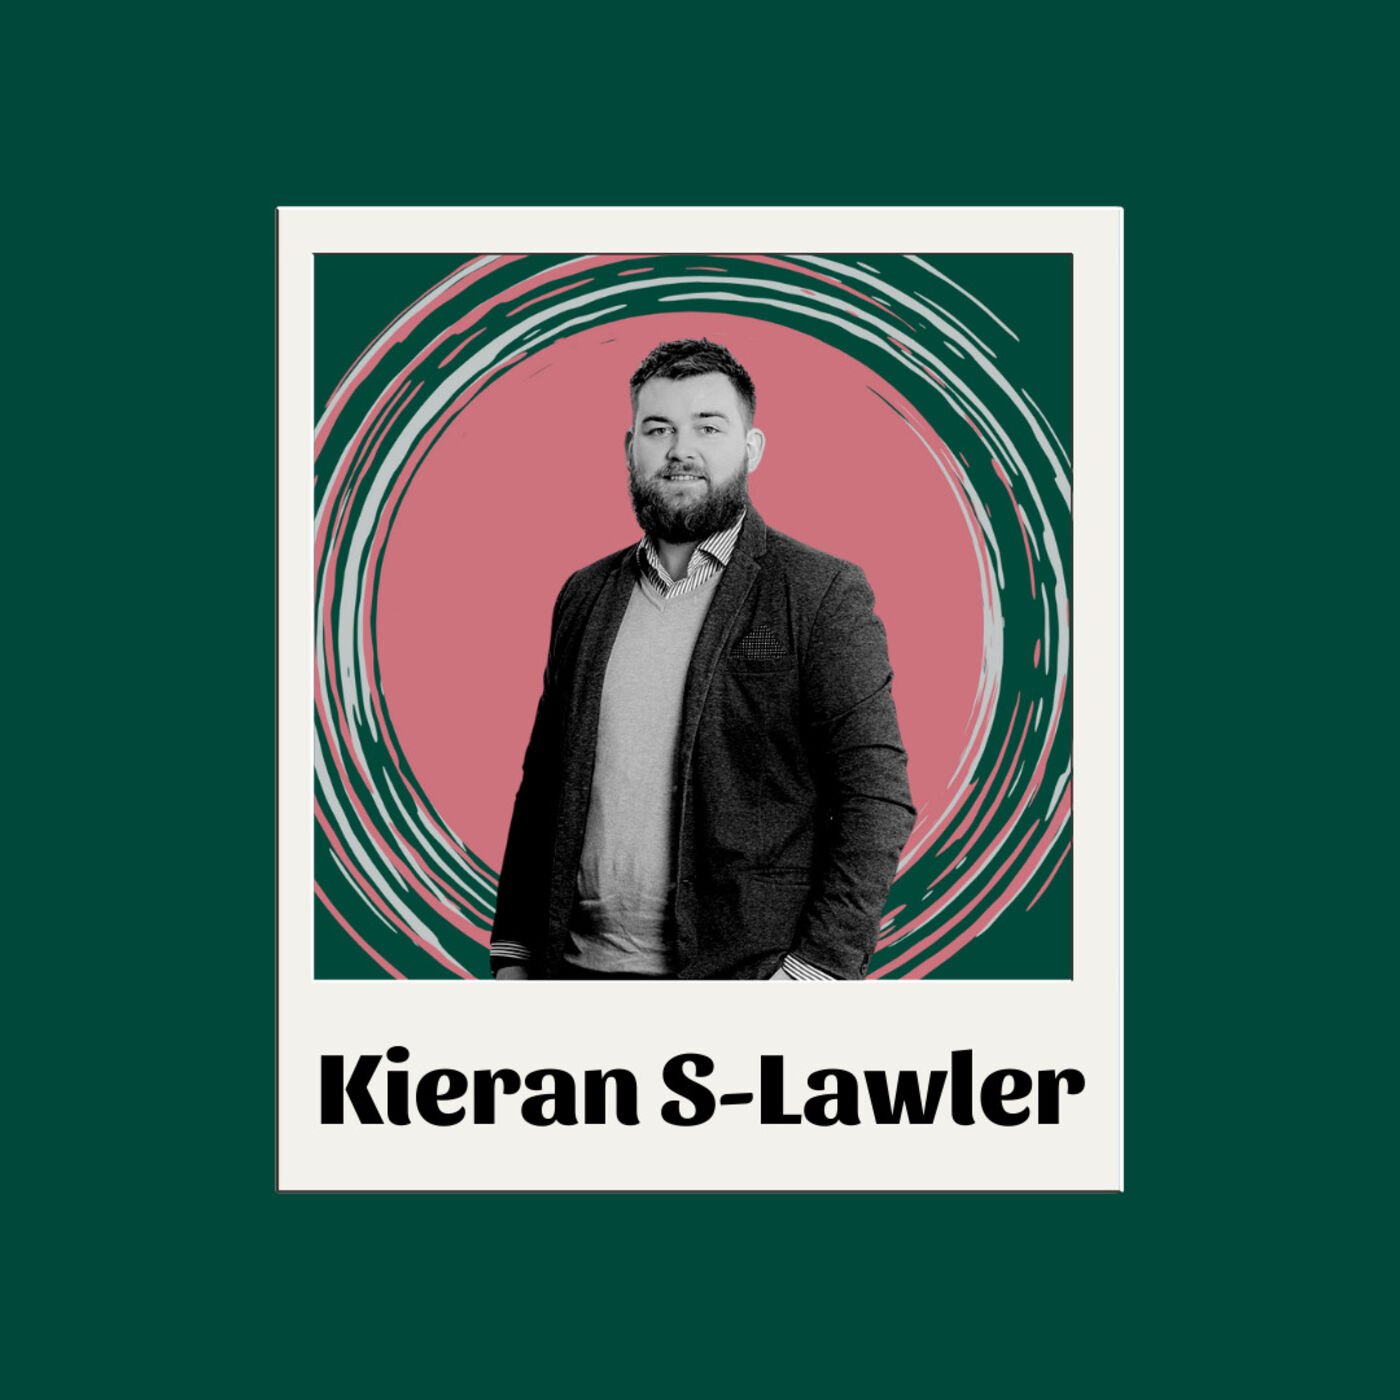 EP10 Kieran S-Lawler - Building a career, moving around and good quality relationships